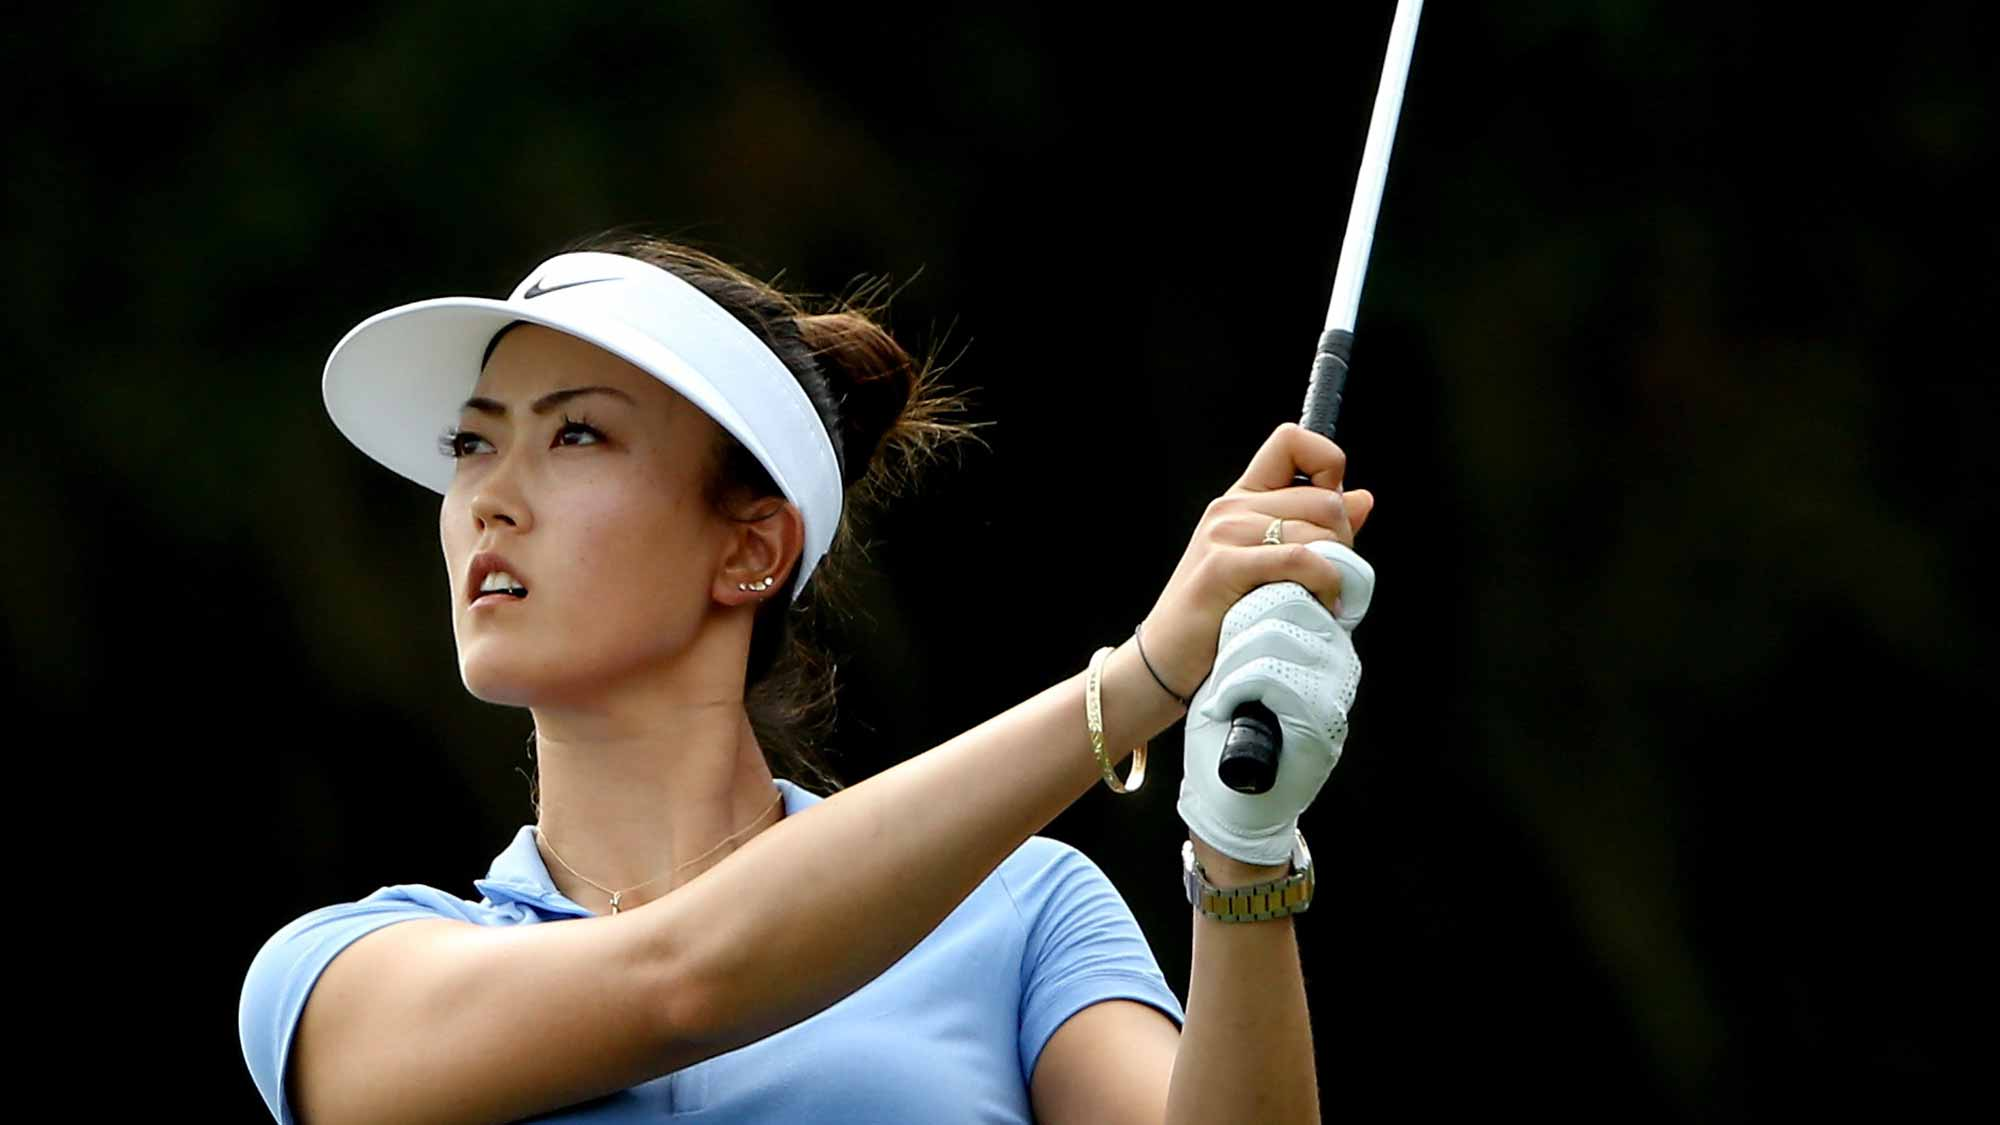 Michelle Wie of the United States plays a shot on the fourth hole during the first round of the Coates Golf Championship Presented By R+L Carriers at Golden Ocala Golf Club